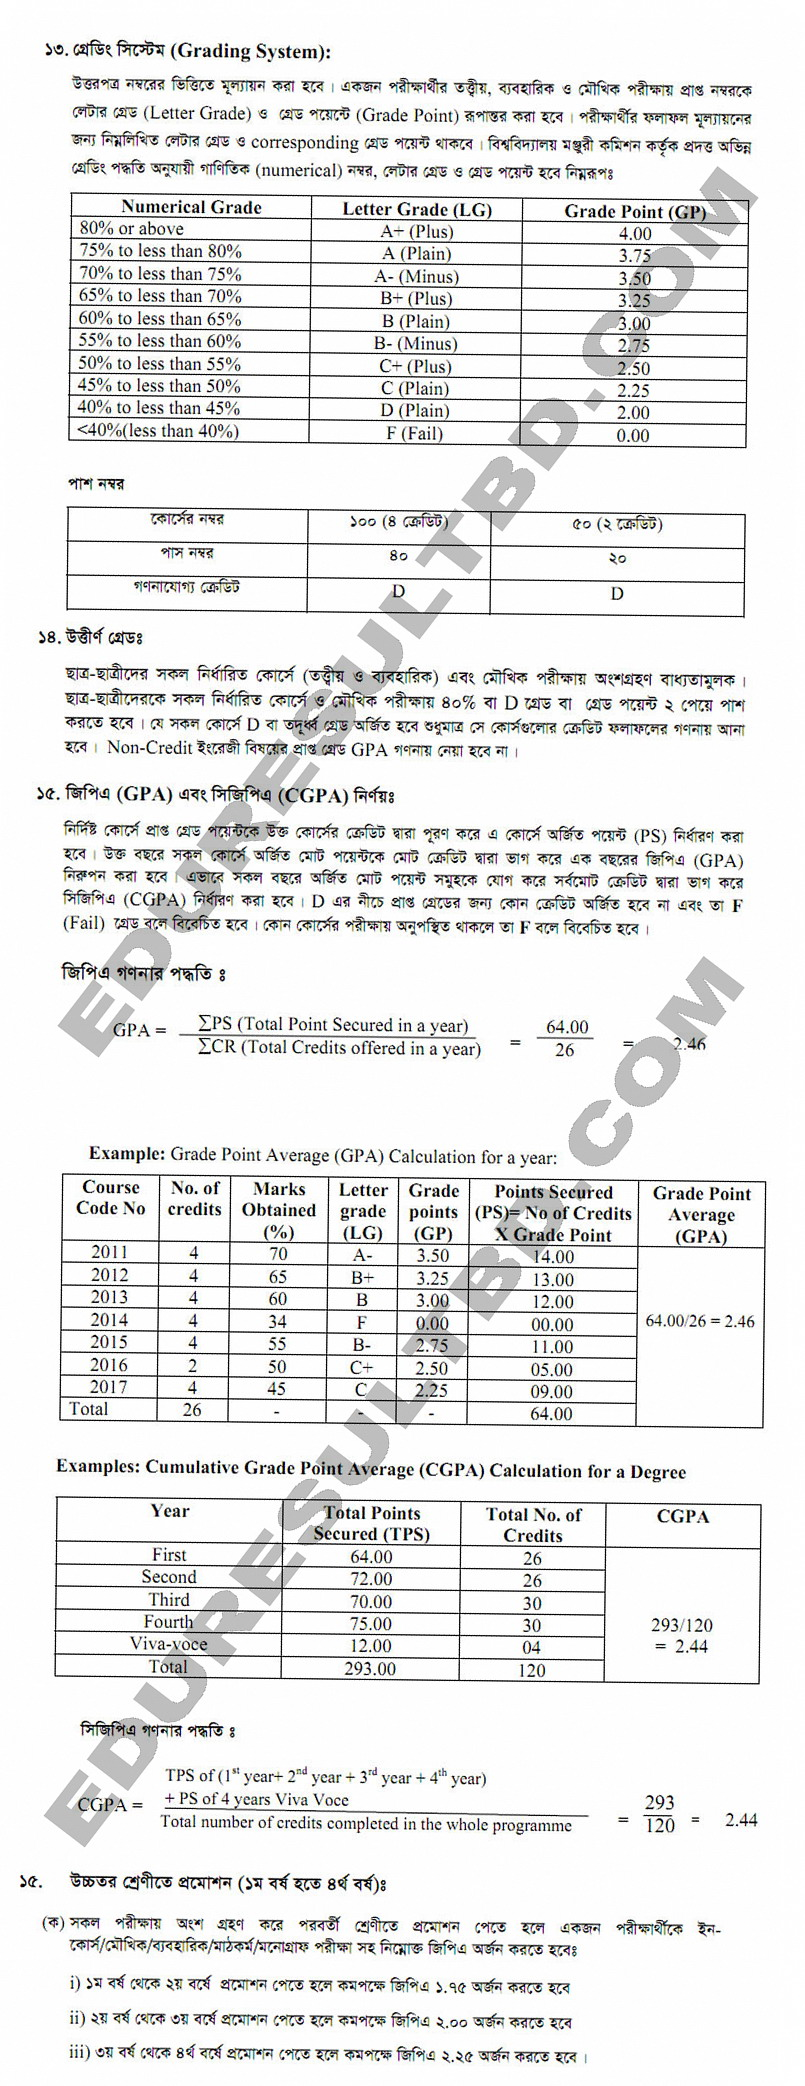 Download Grading System And Gpa Calculation Process